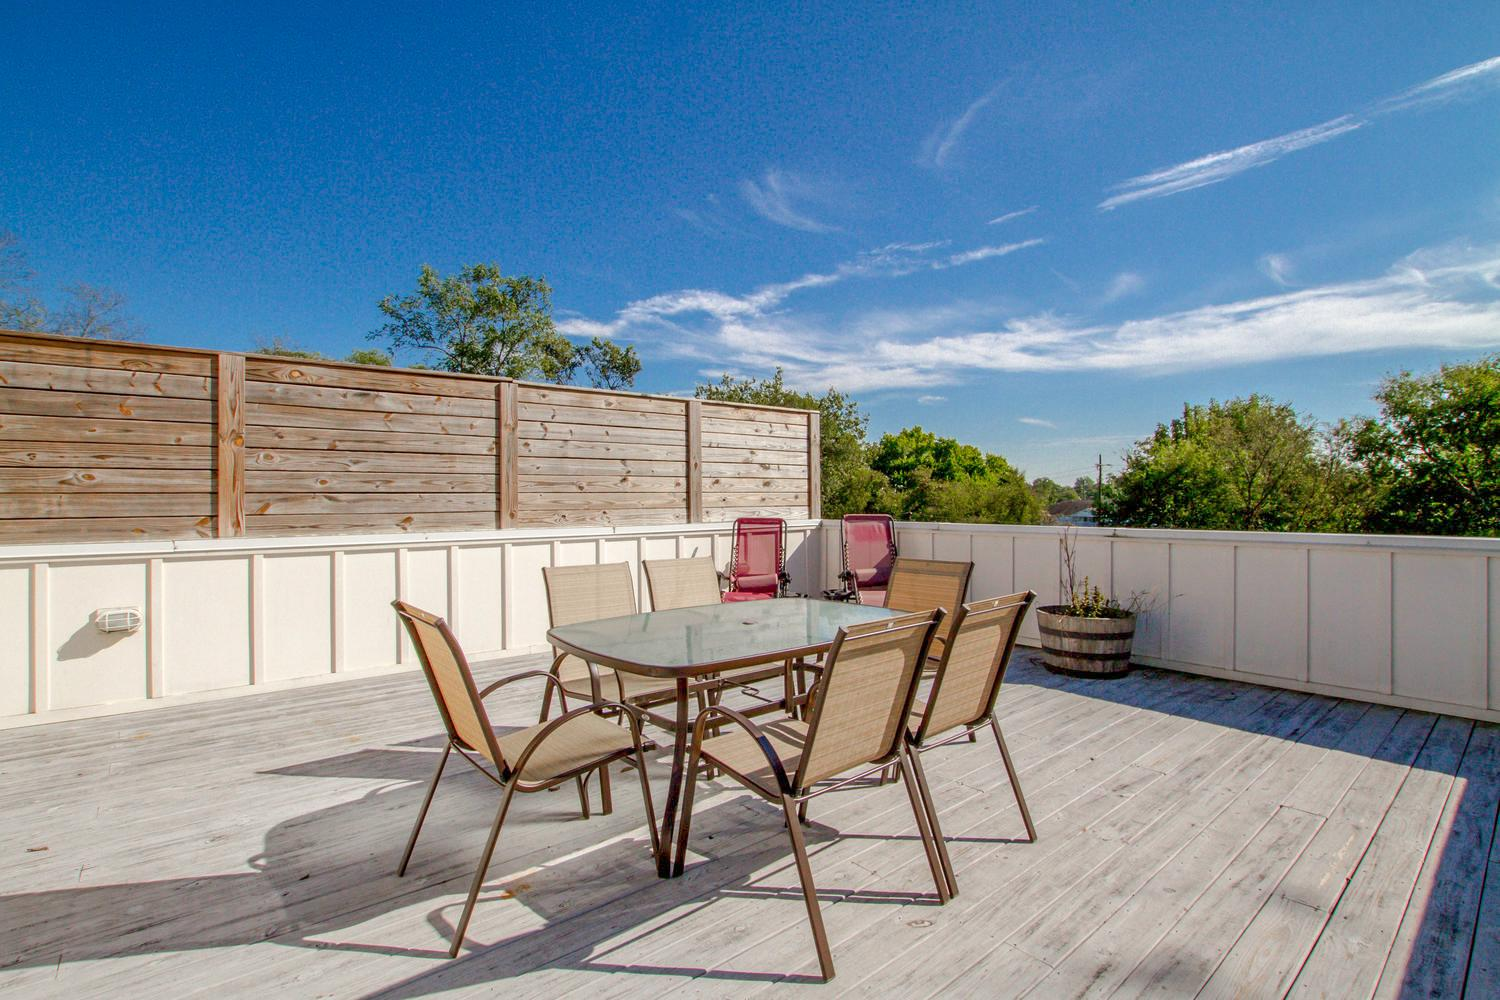 Property Image 2 - Contemporary, Bright Townhome with Rooftop Deck